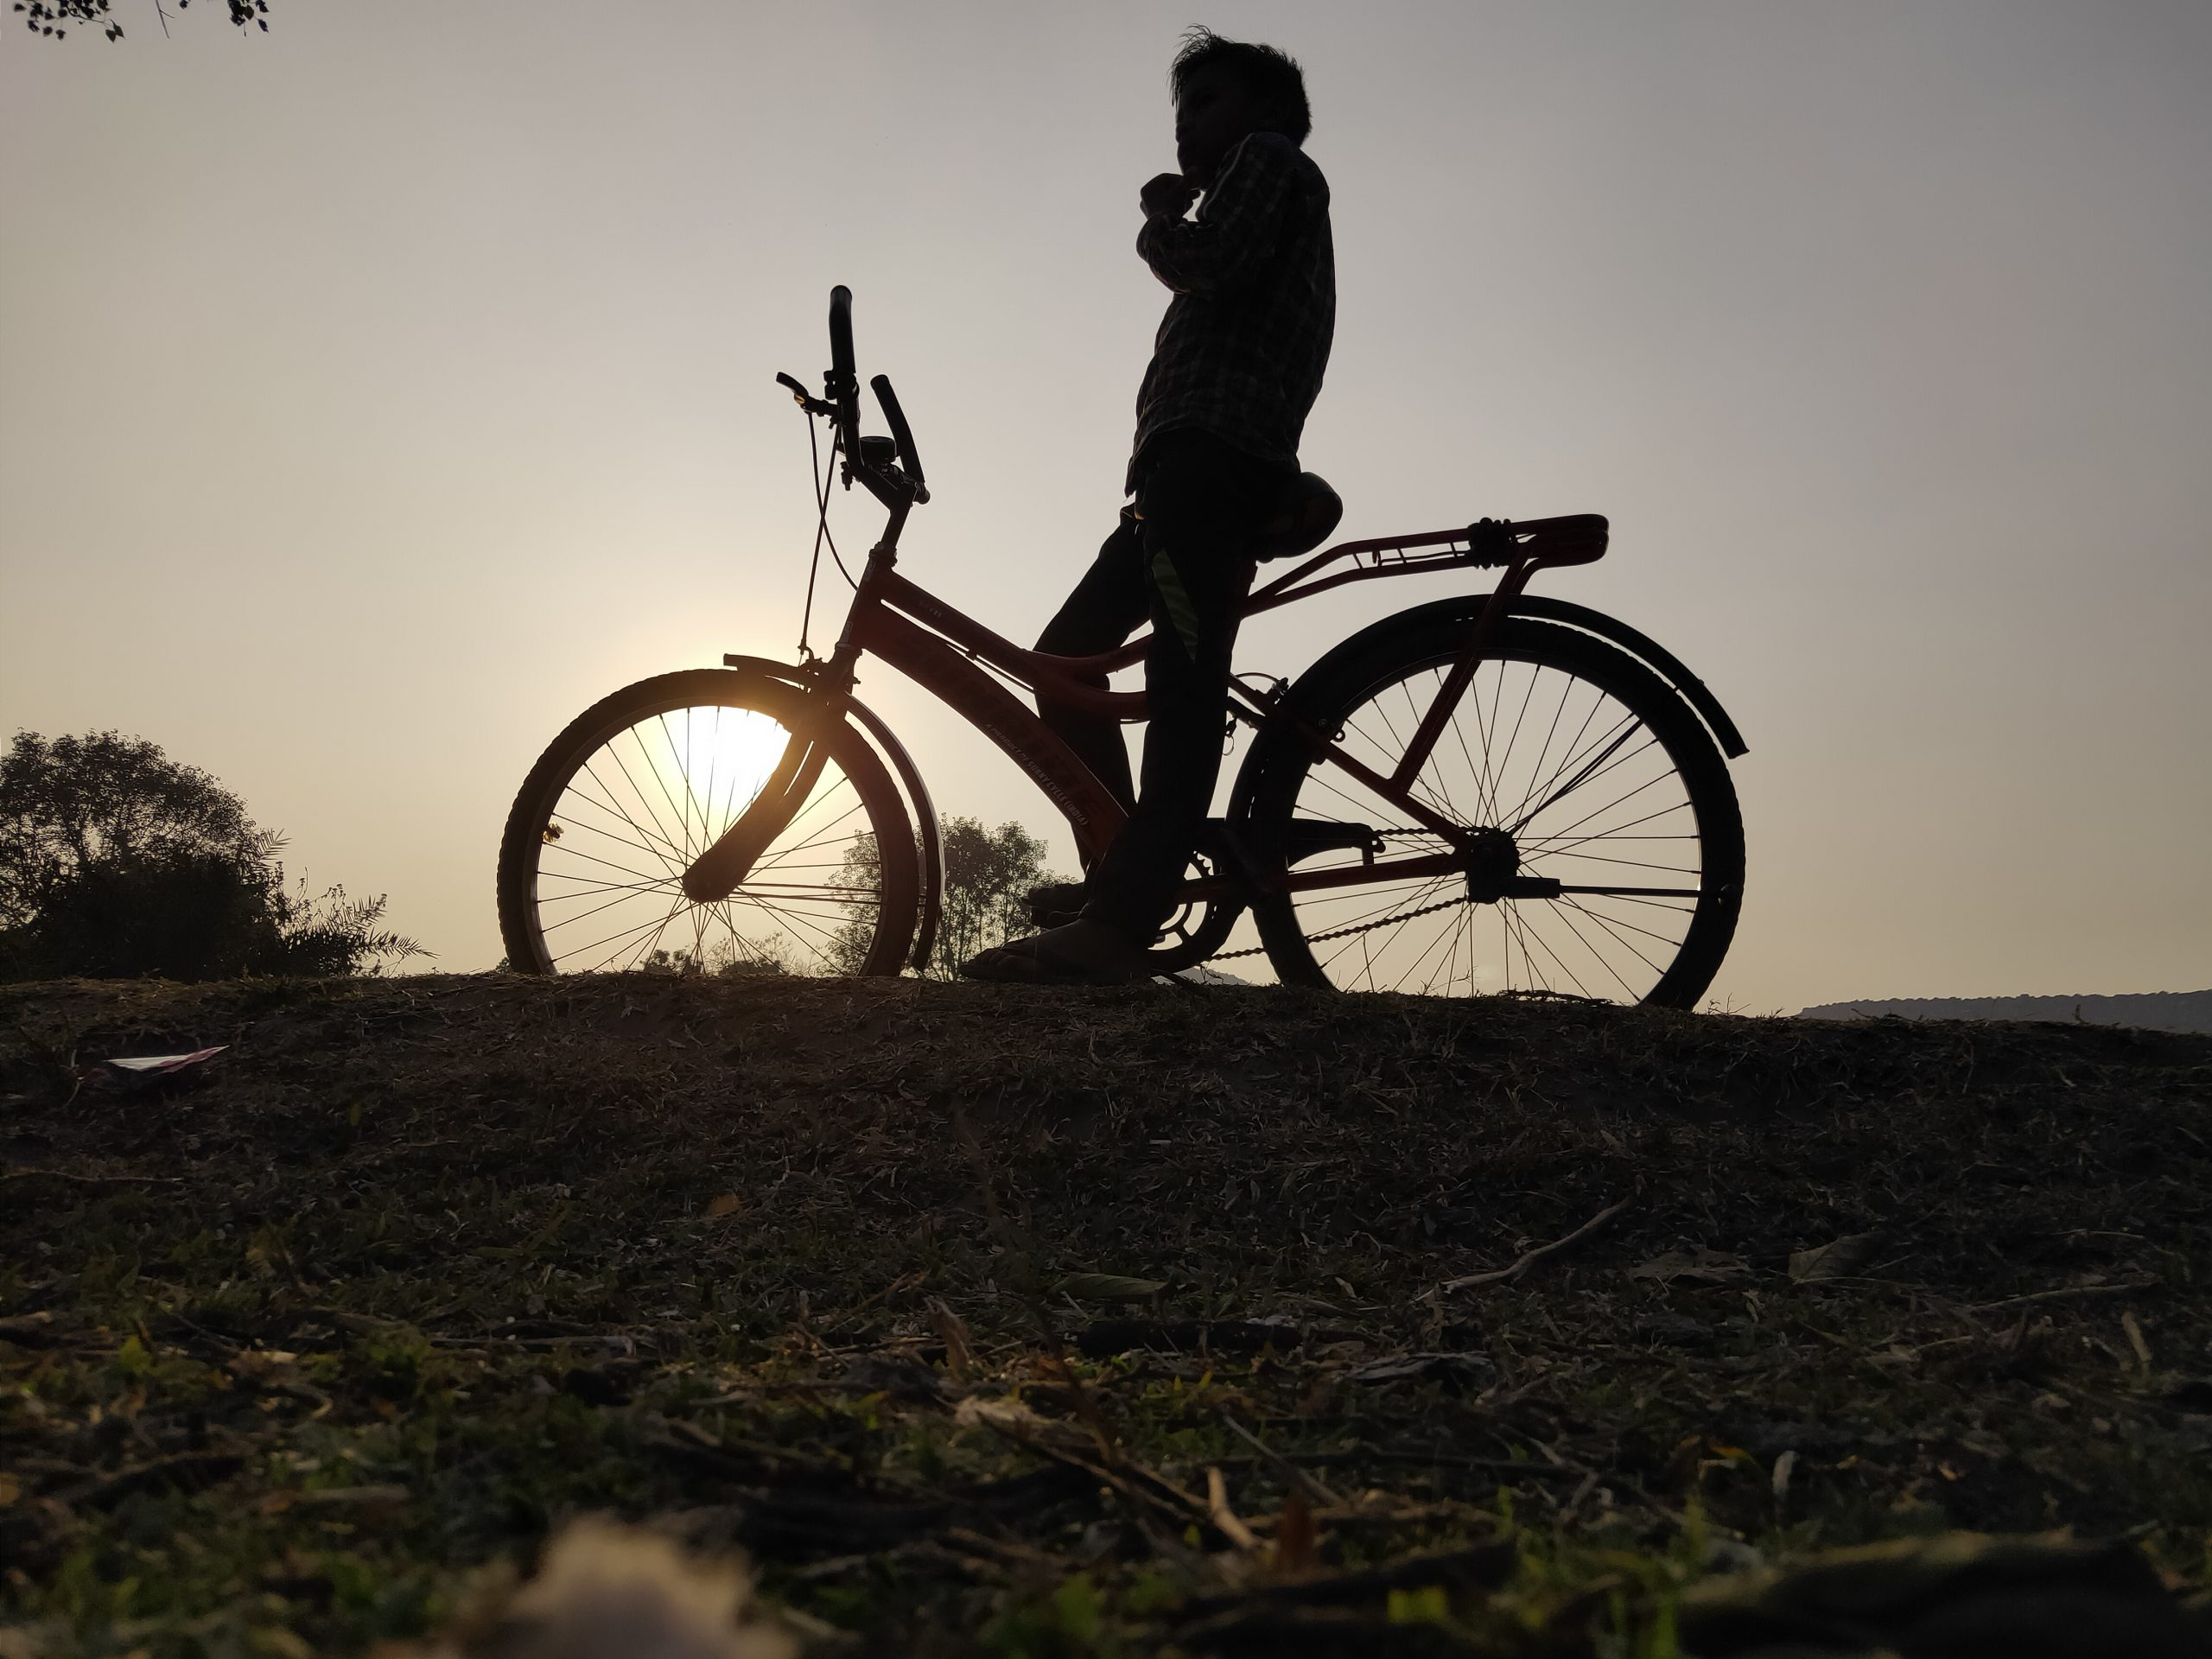 Boy on cycle in sunset